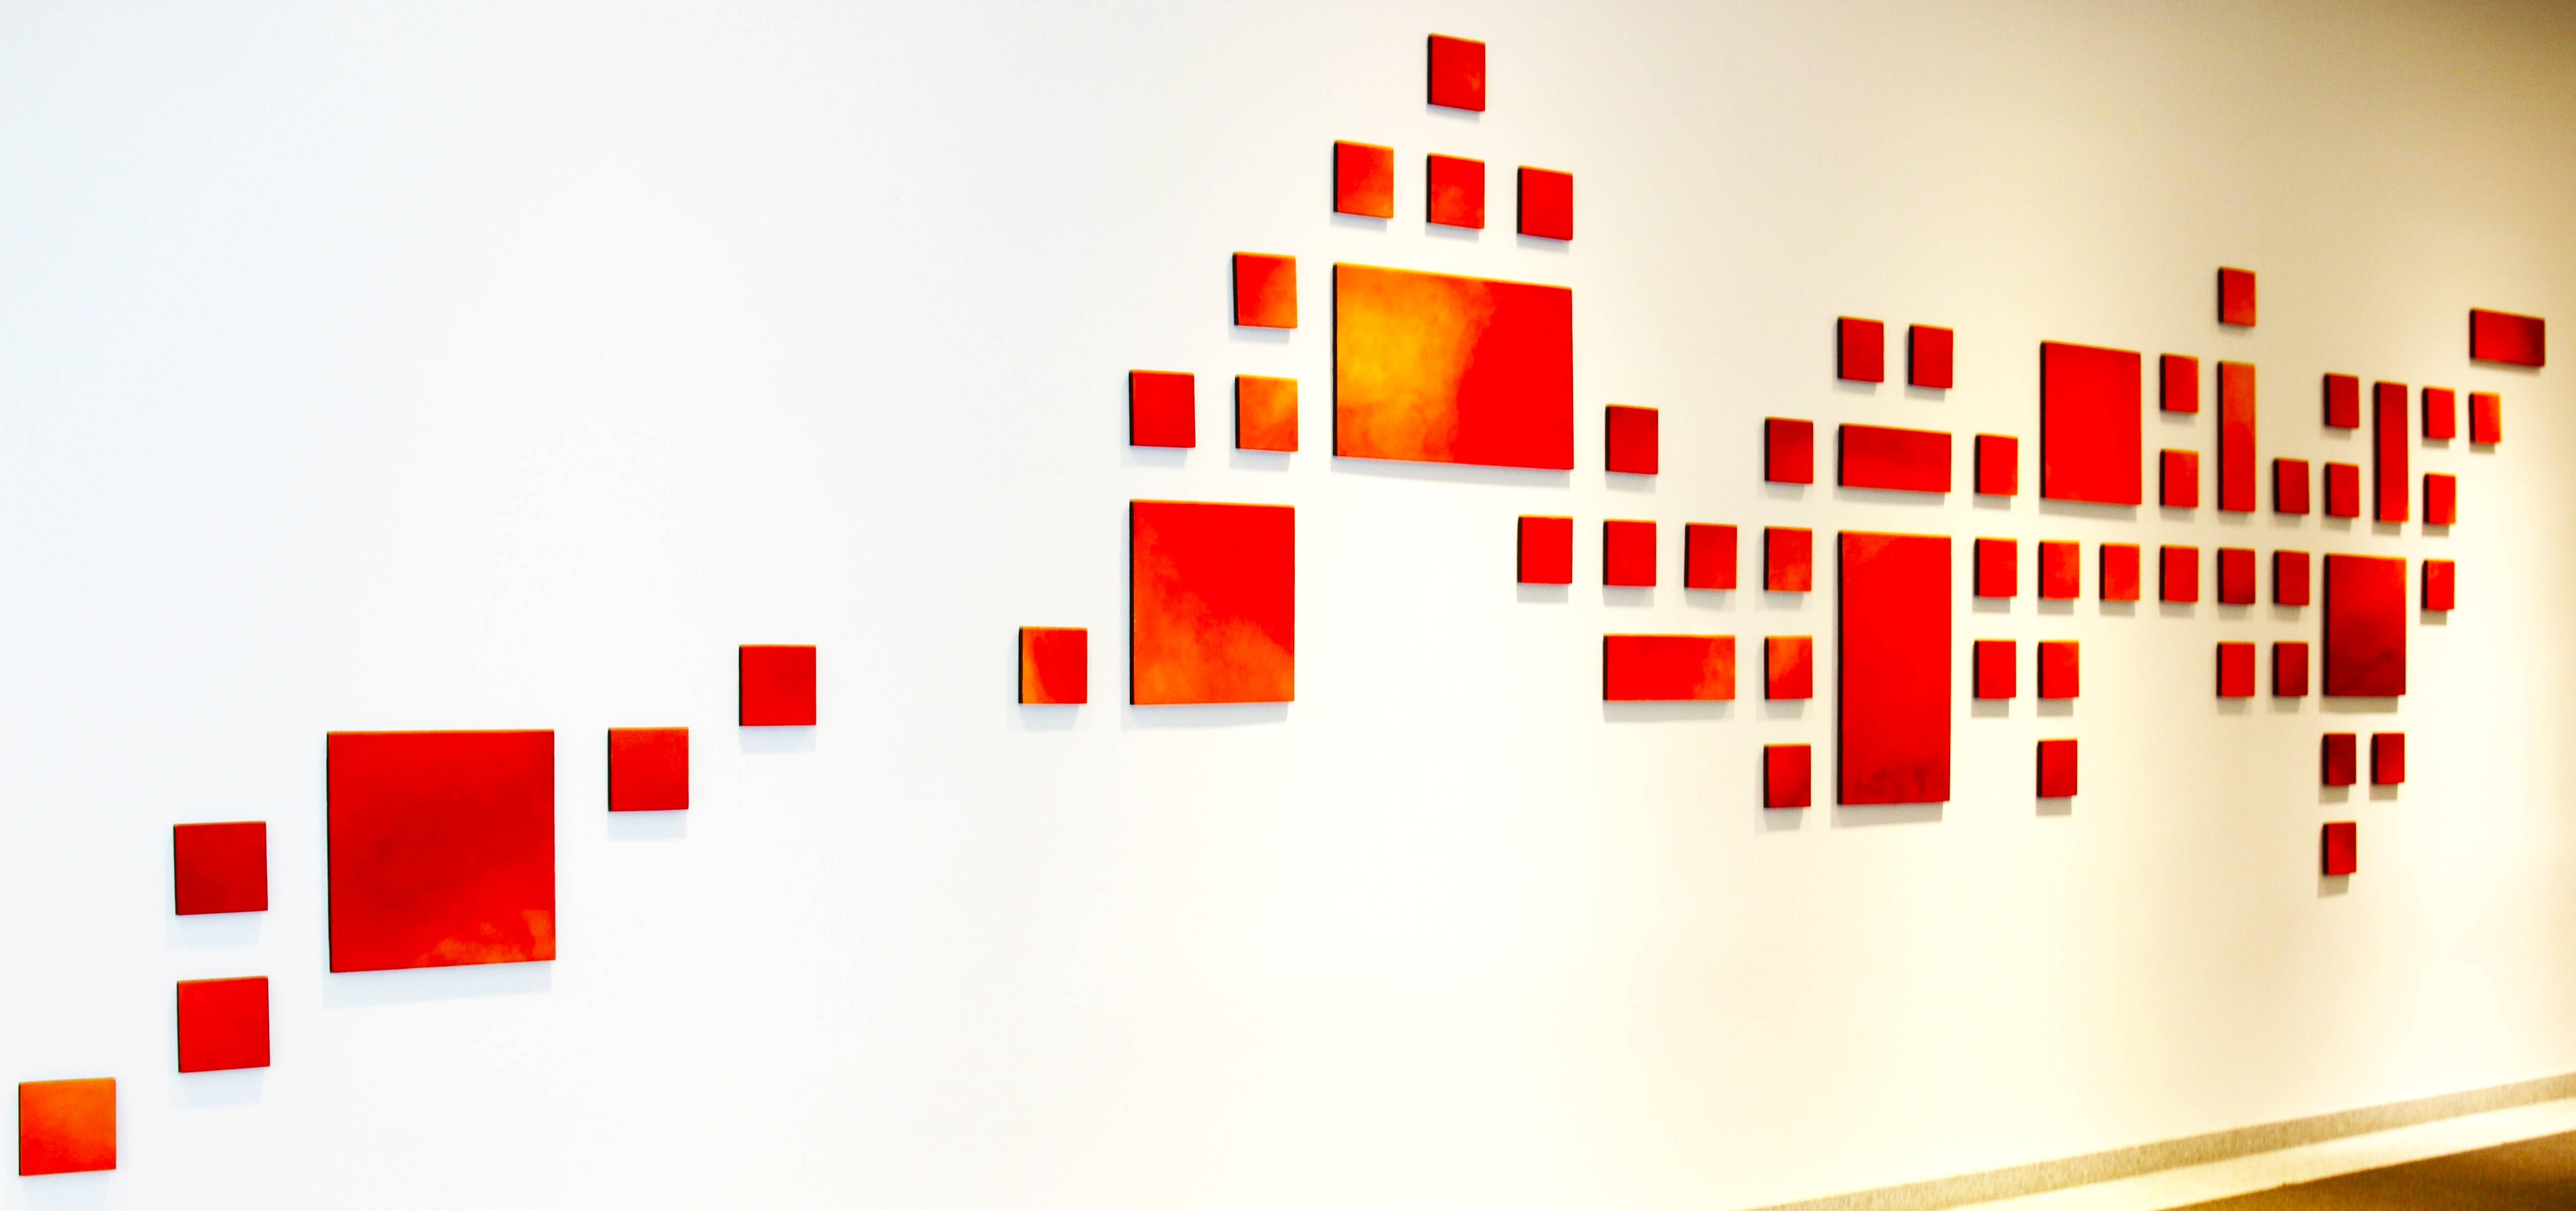 3D Wall Art Archives | Rosemary Pierce Modern Art Throughout Most Current Corporate Wall Art (View 1 of 20)